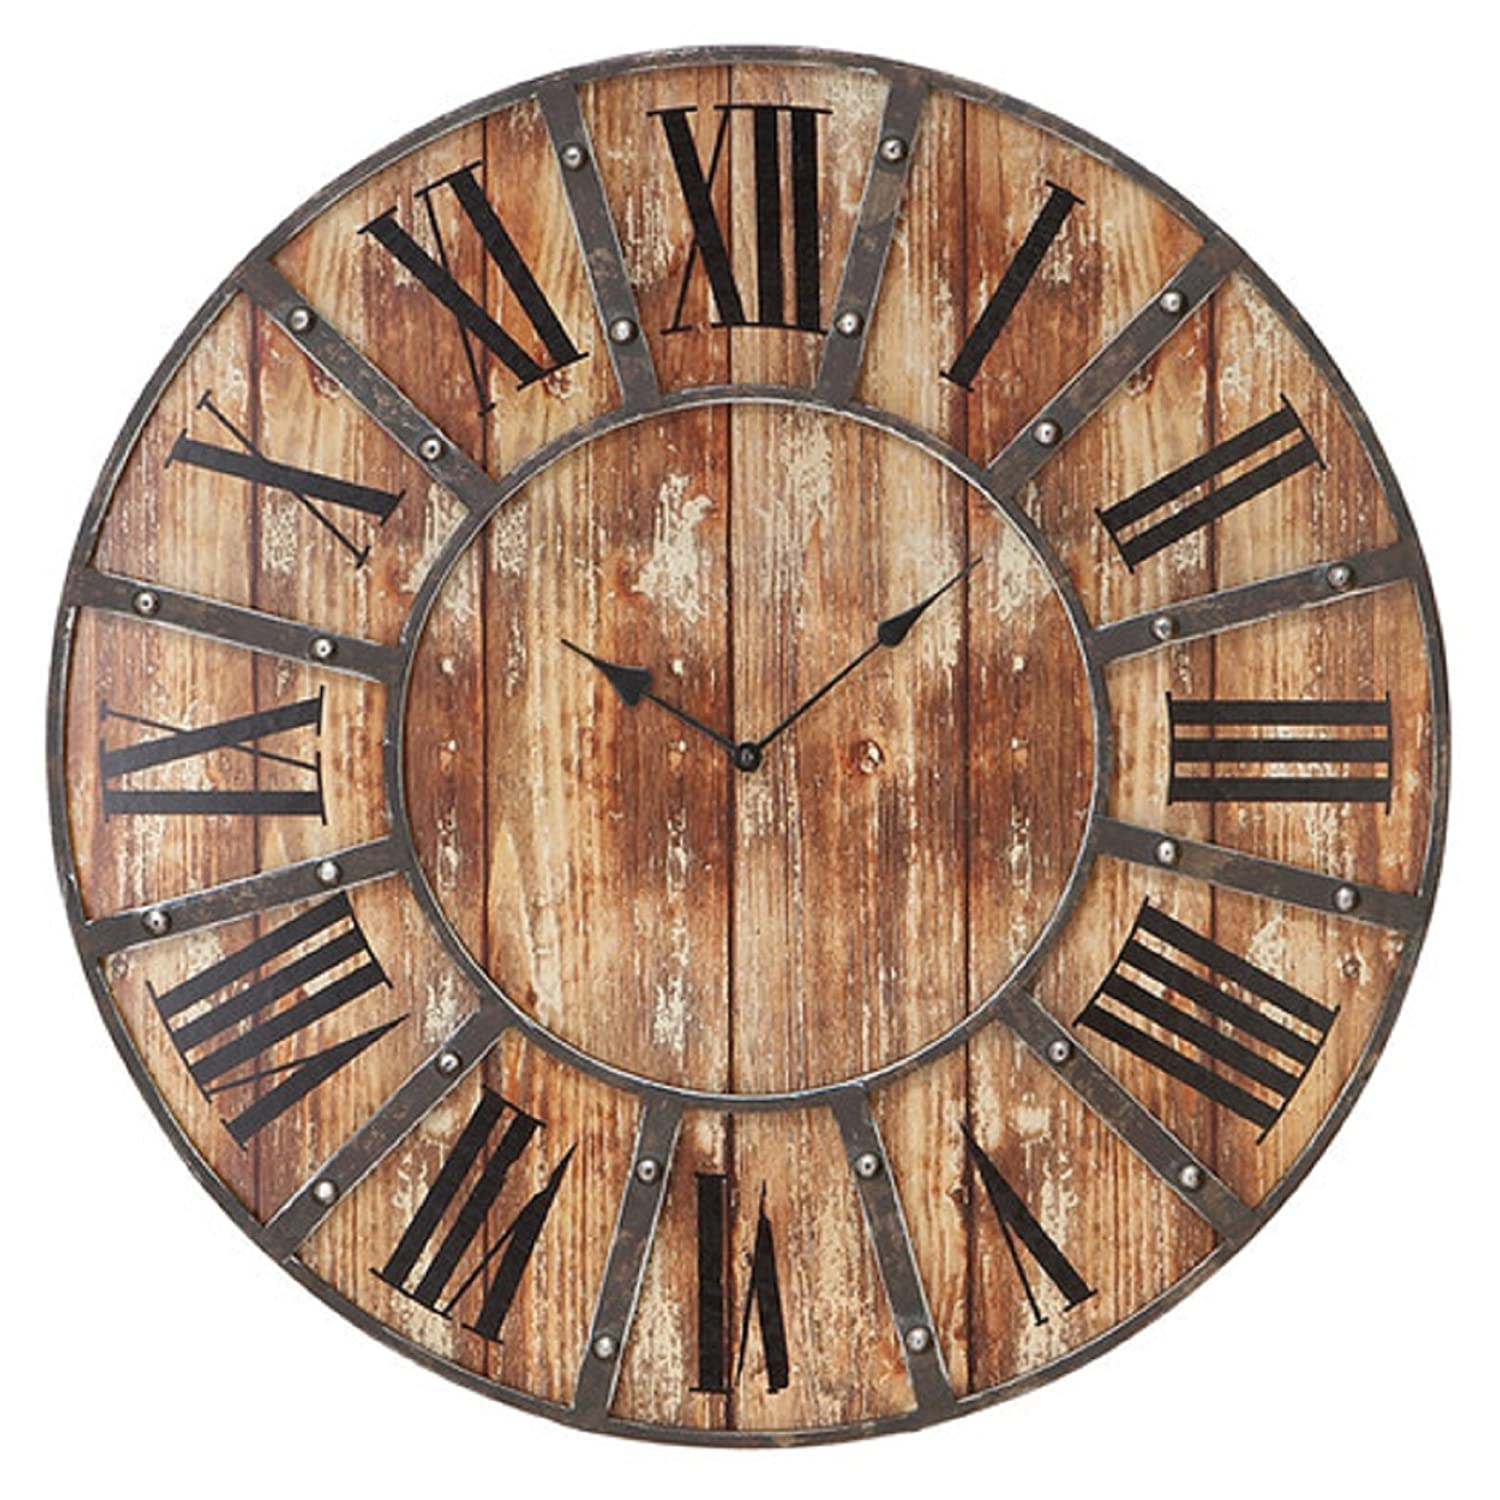 Amazon oversized 24 rustic metal wall clock roman numeral amazon oversized 24 rustic metal wall clock roman numeral numbering home kitchen amipublicfo Choice Image